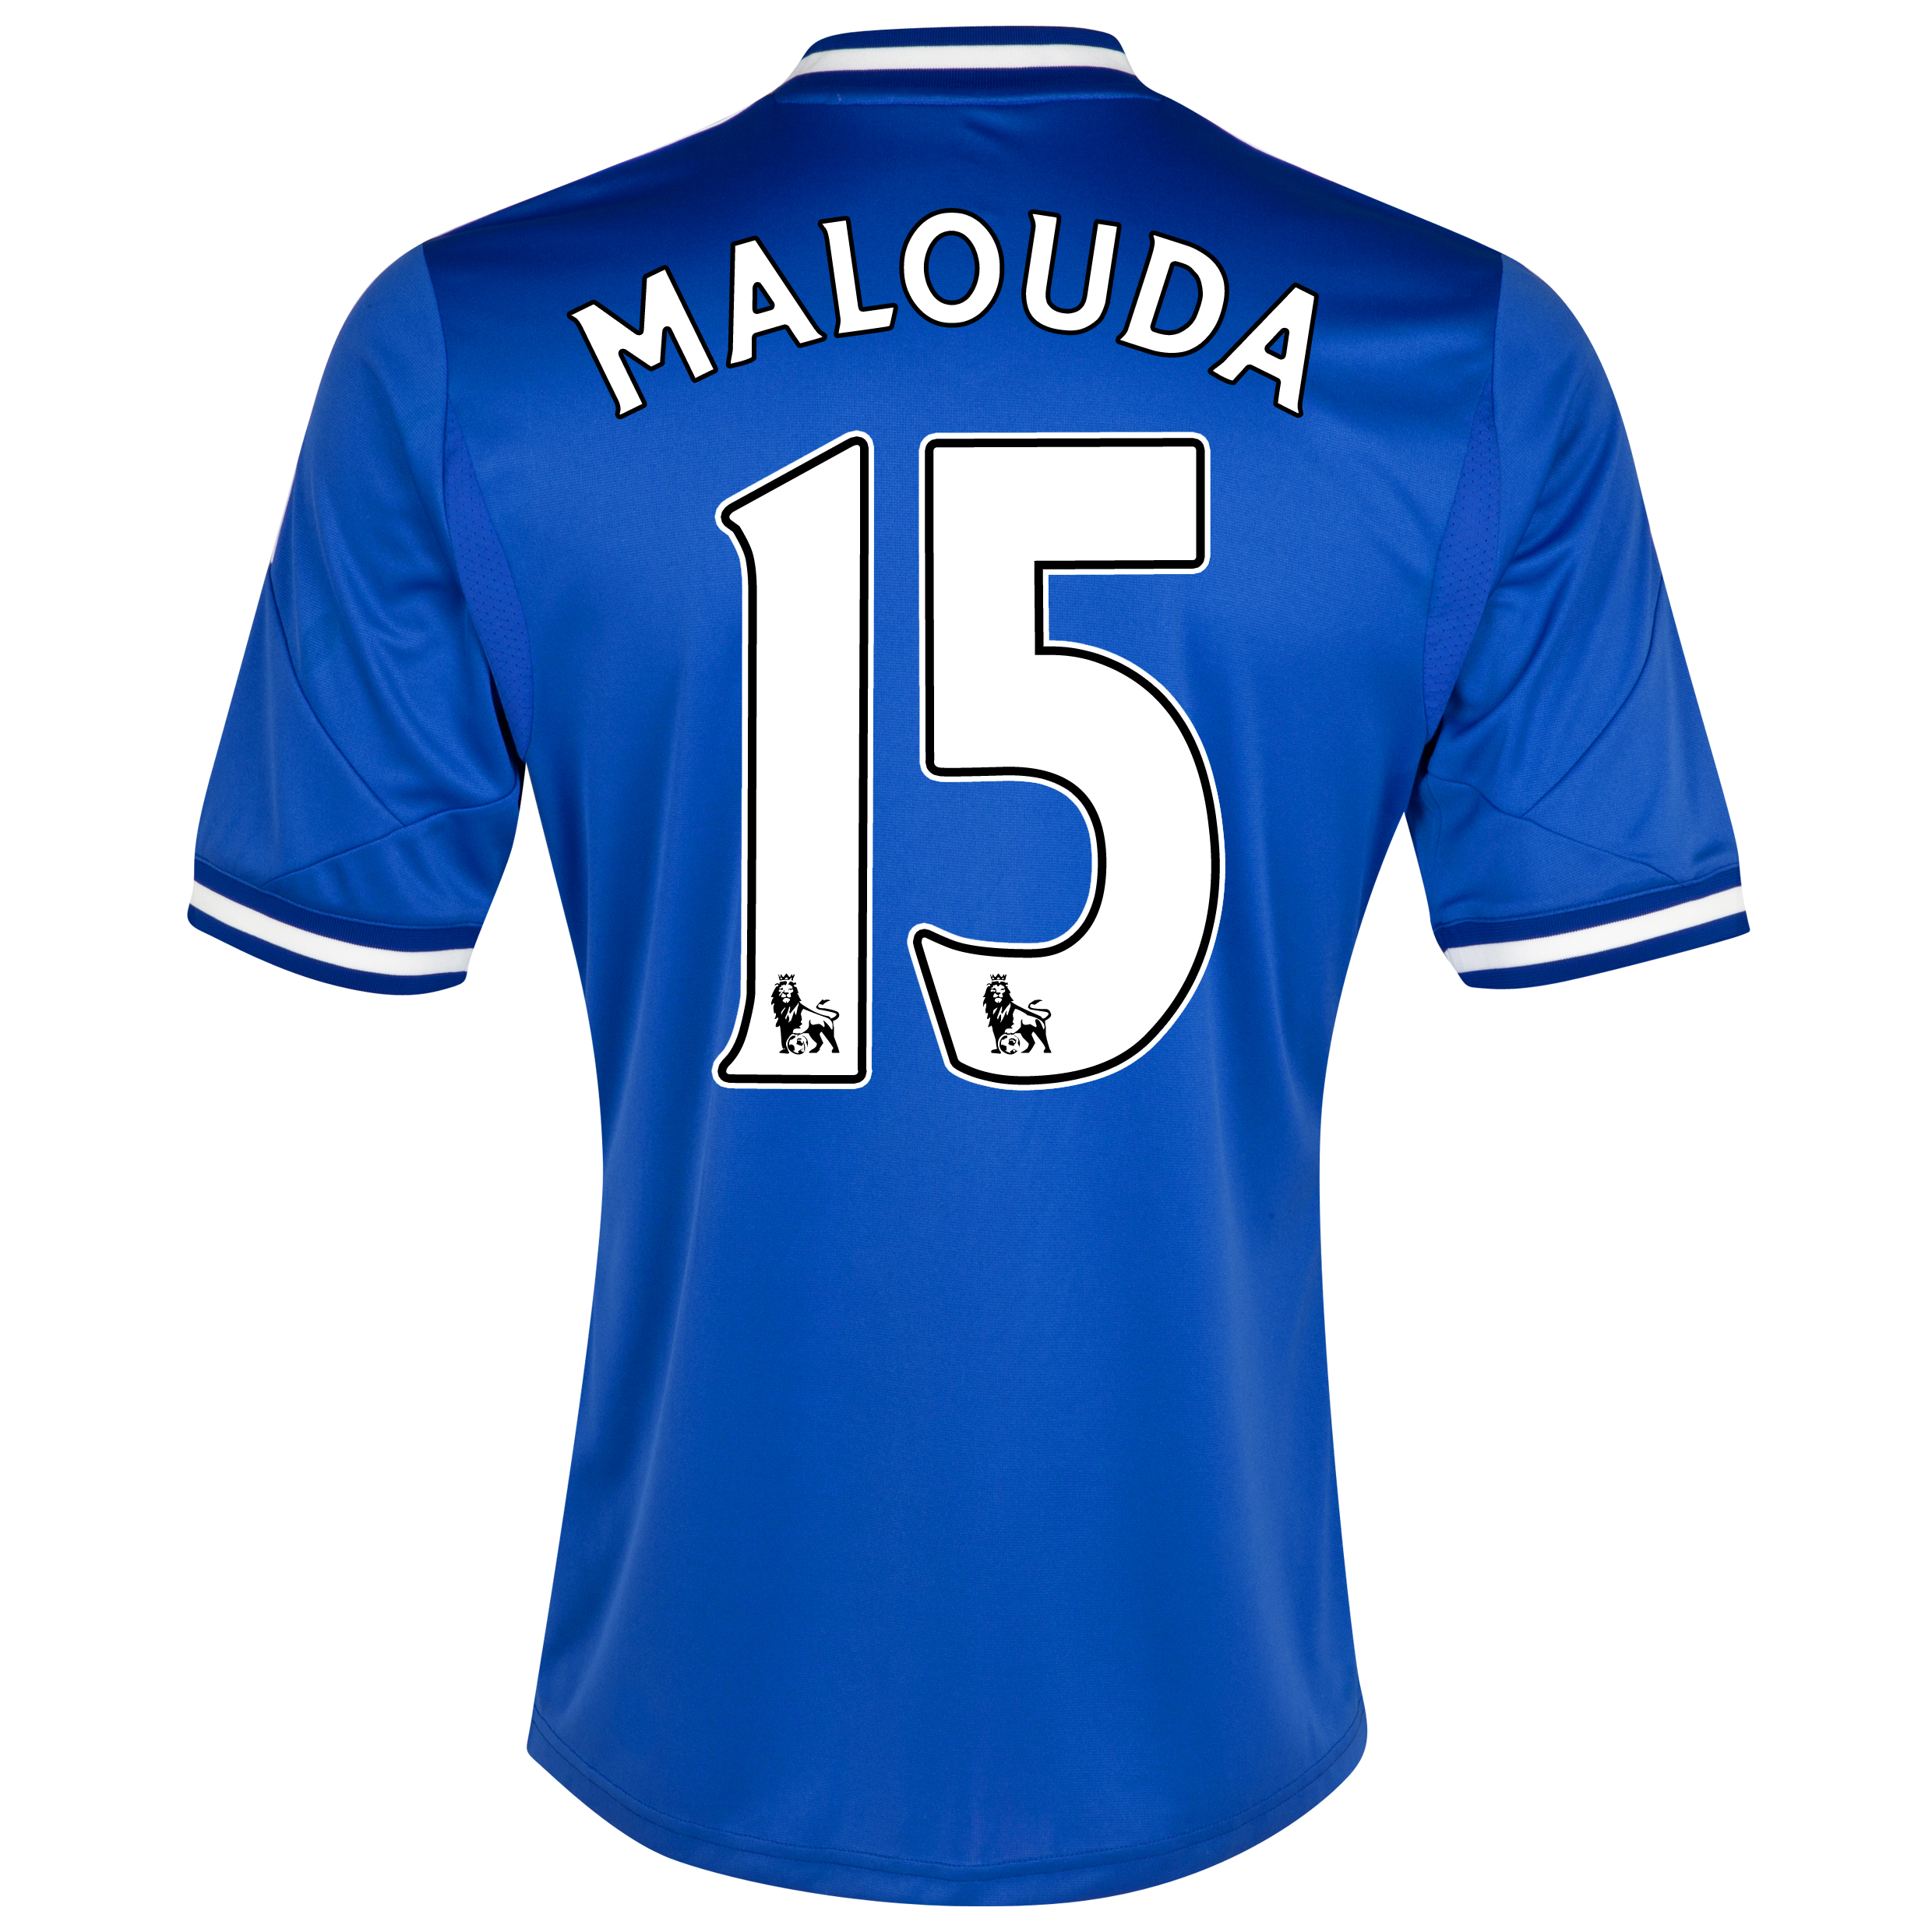 Chelsea Home Shirt 2013/14 - Outsize with Malouda 15 printing